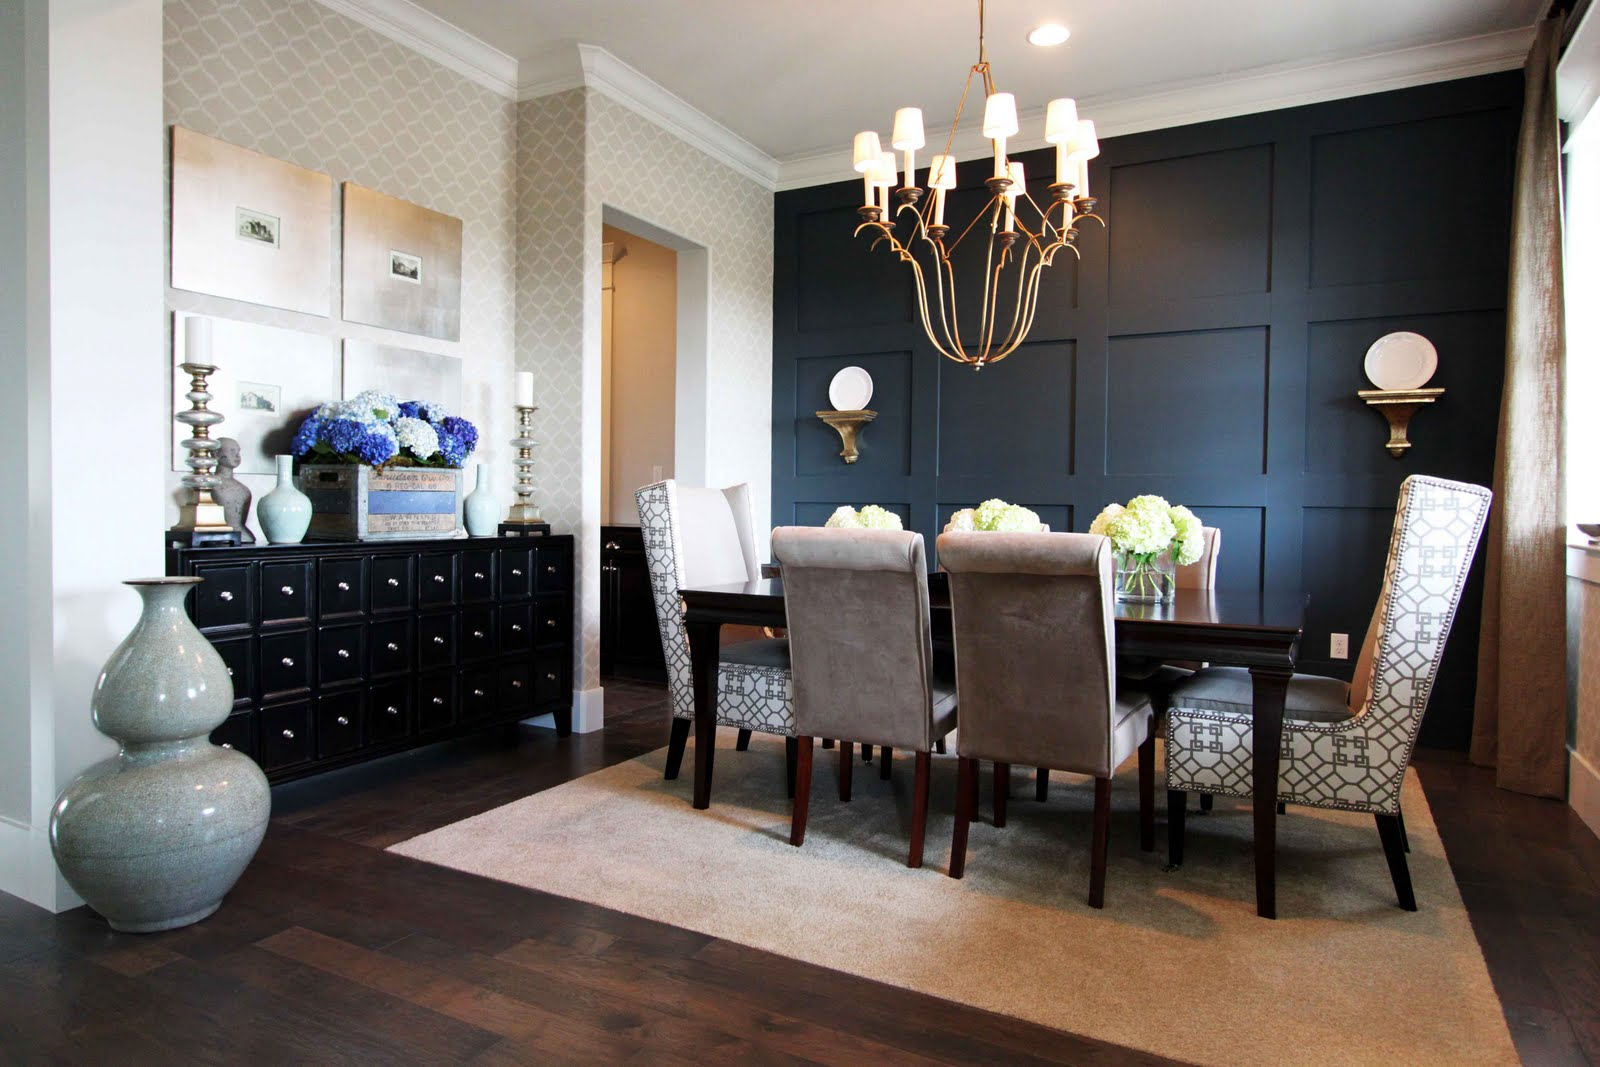 Stiles fischer interior design hgtv showhouse showdown for Dining room pictures